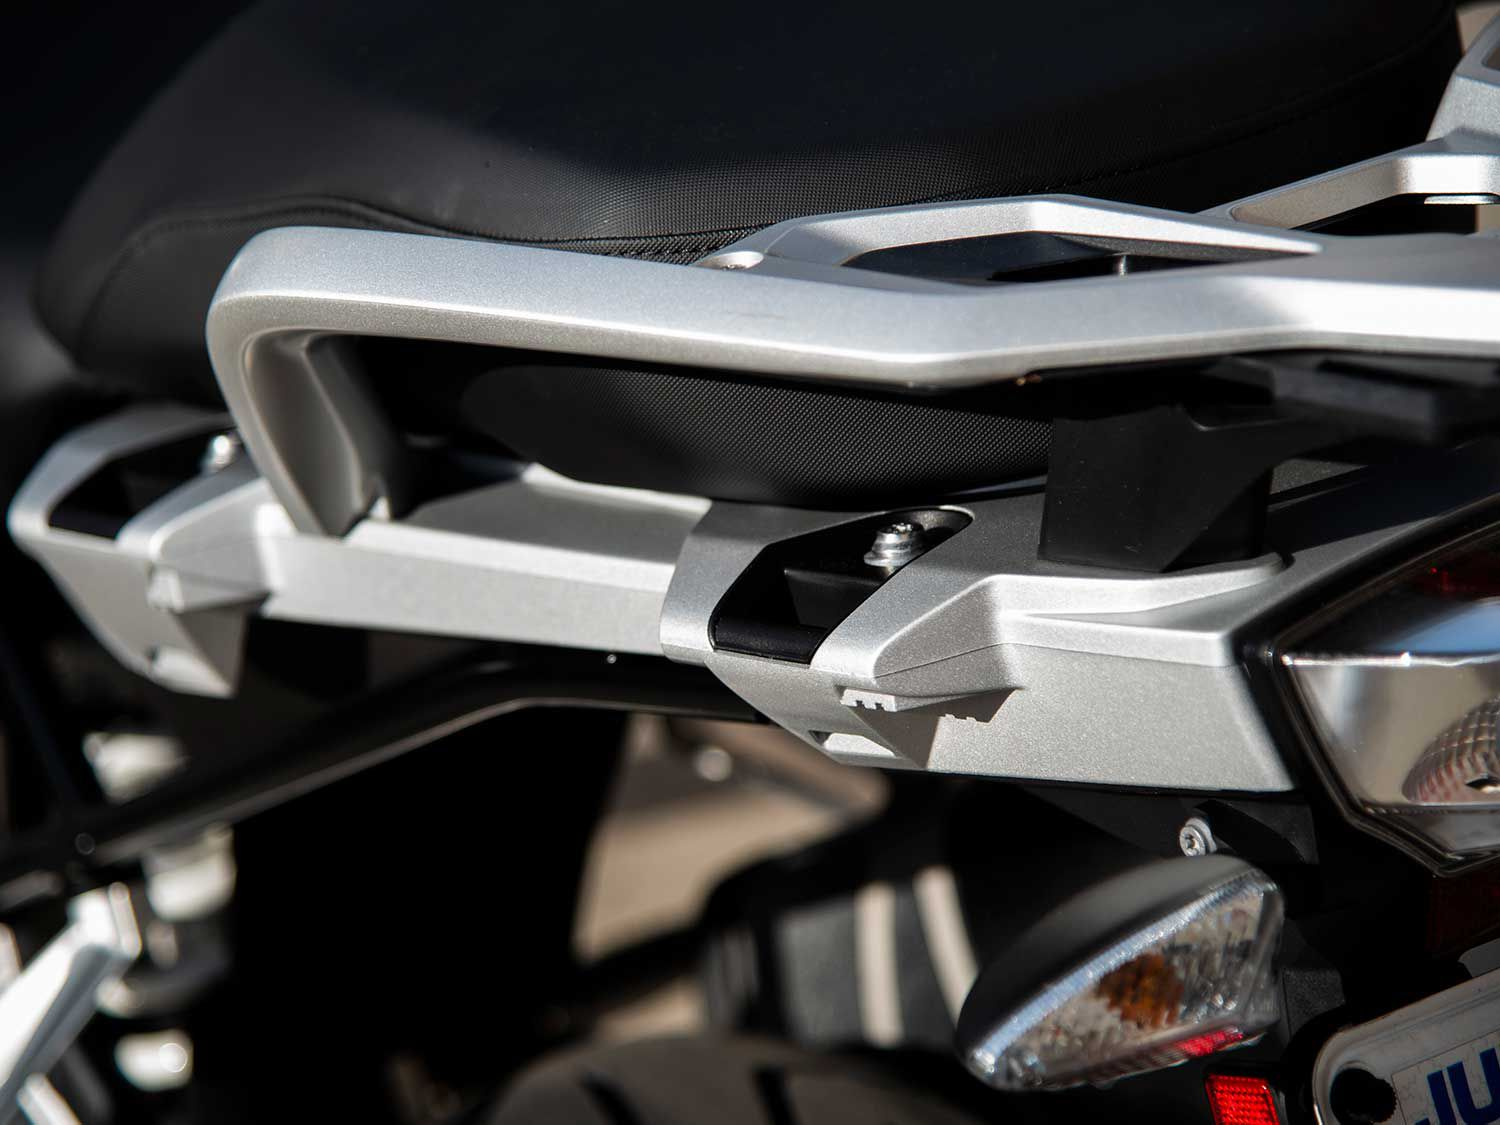 Available saddlebags snap into an otherwise discreetly styled rear subframe.